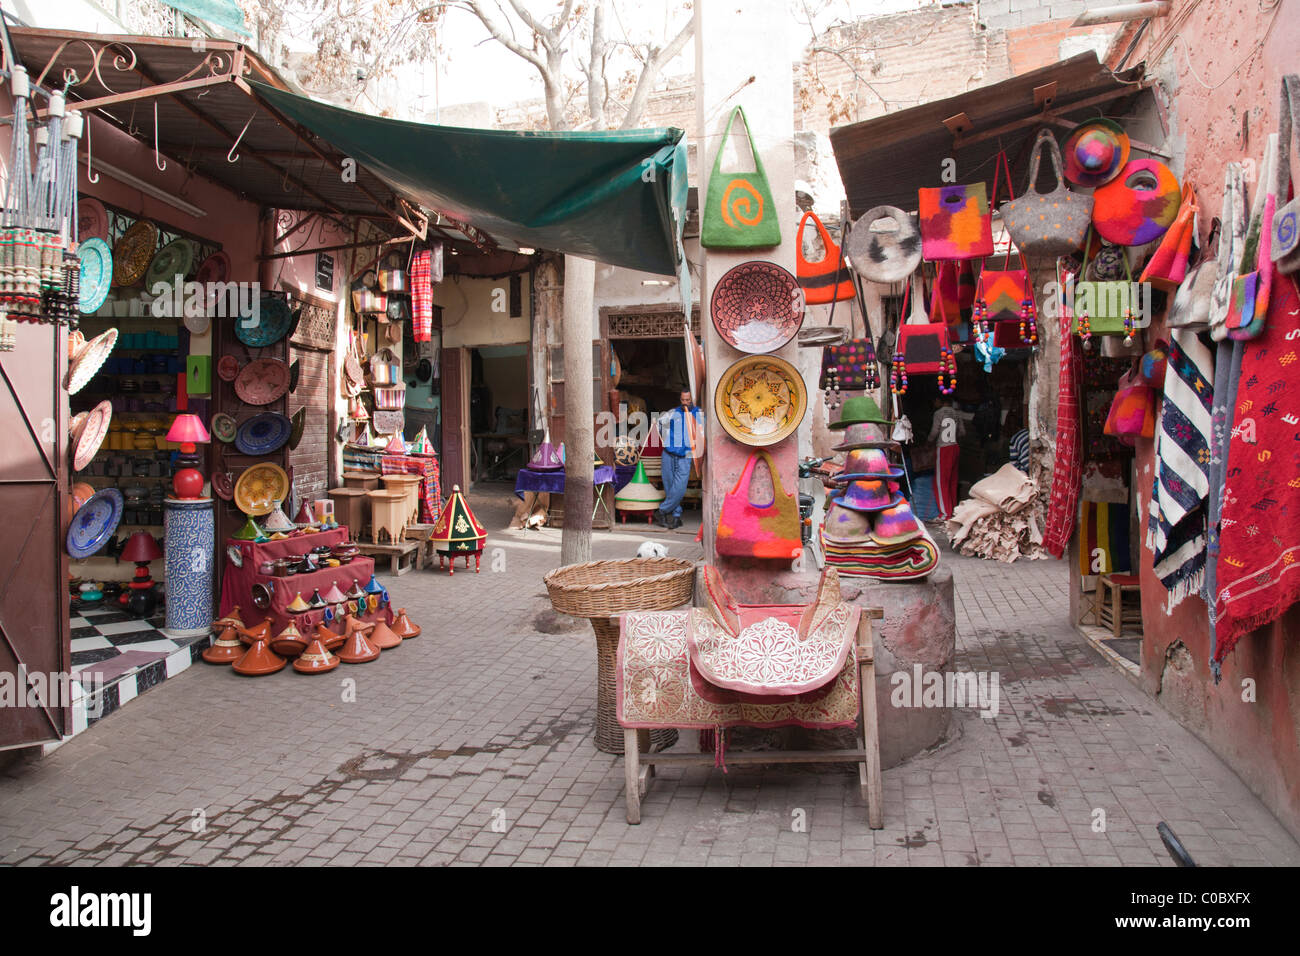 A collection of market stalls in the Medina souk in Marrakech, Morocco Ian McEwen - Stock Image